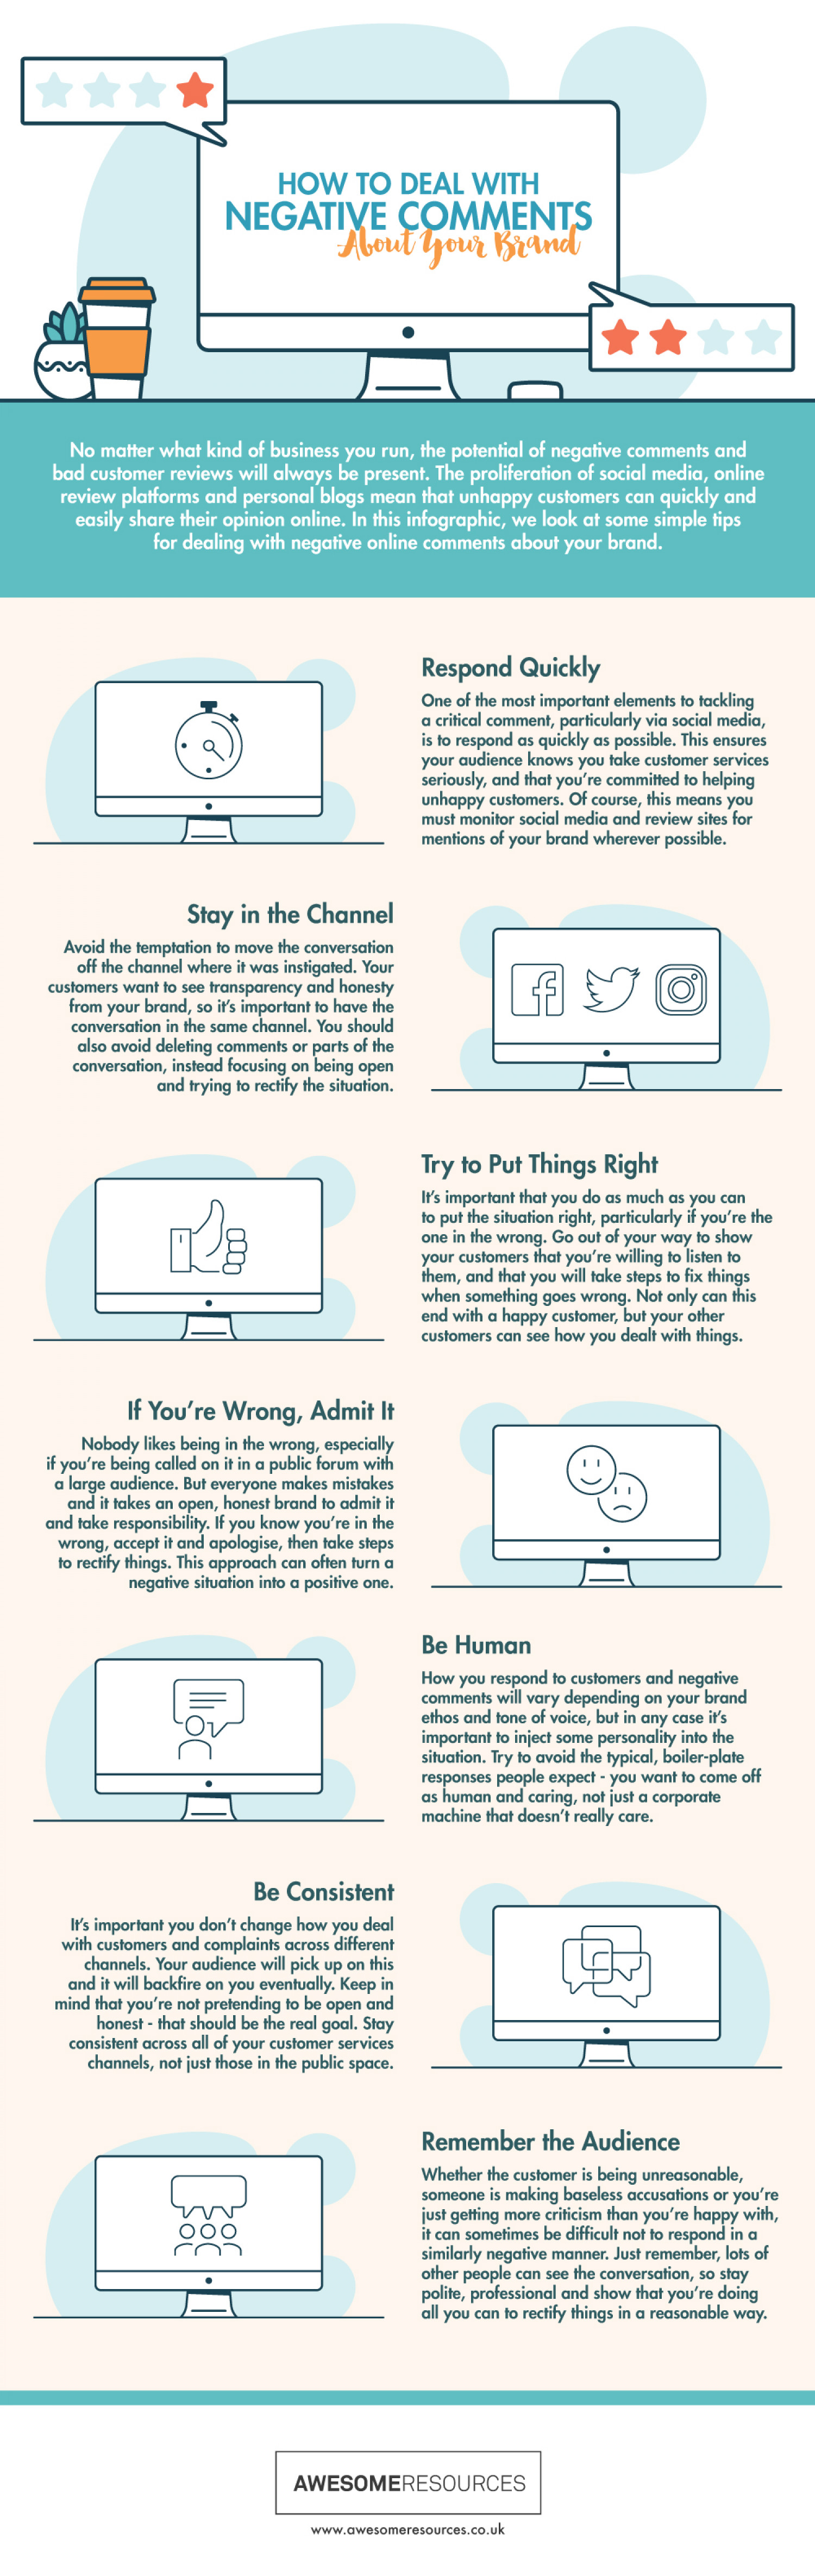 How to Deal With Negative Comments About Your Brand Infographic